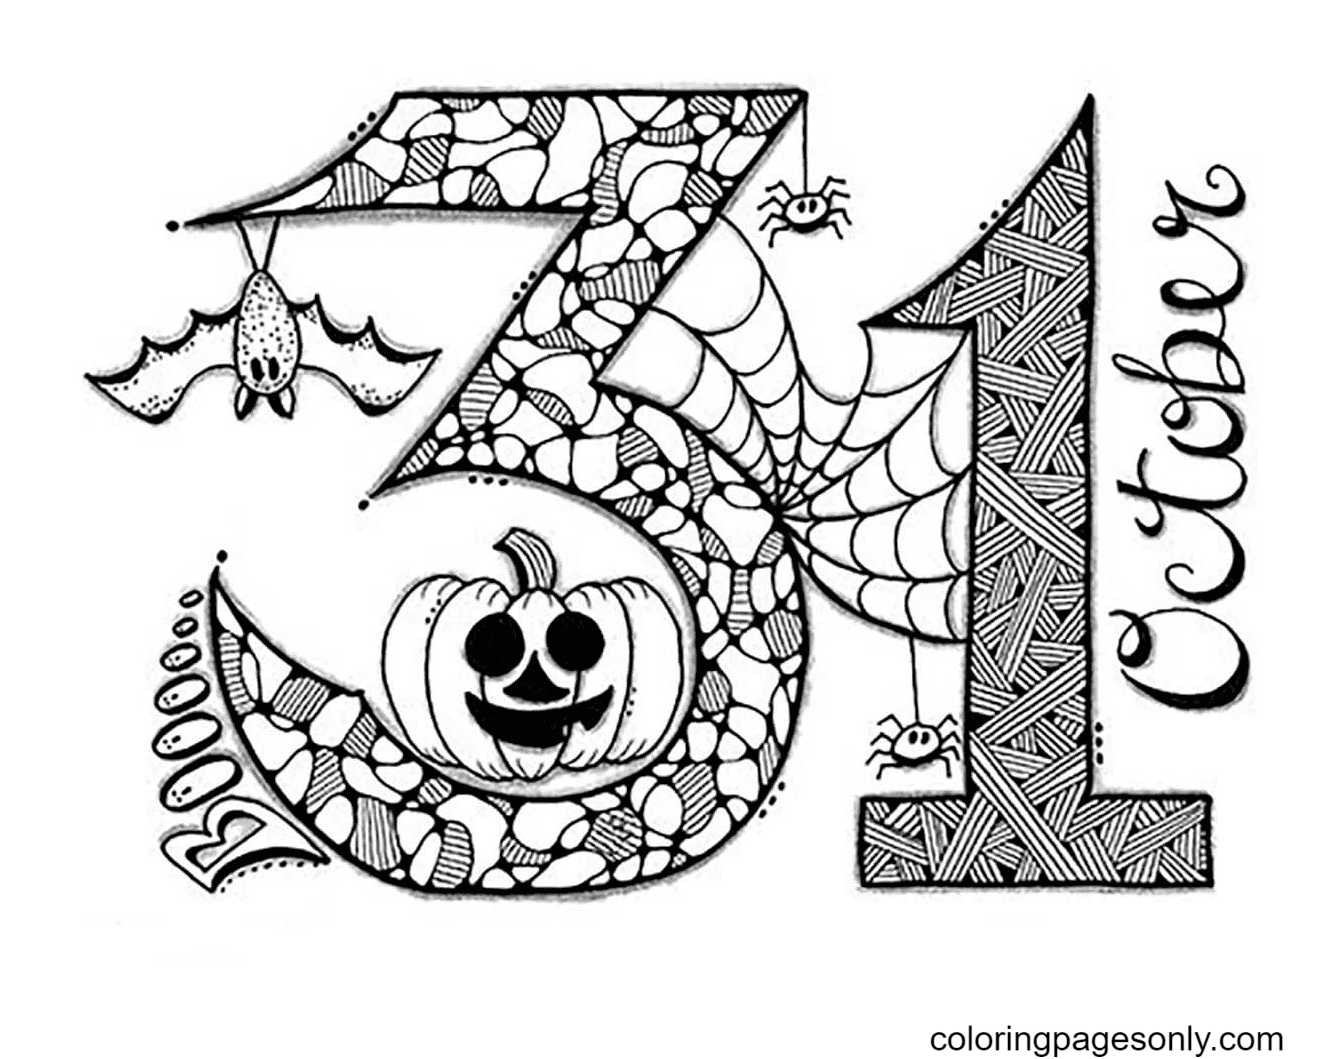 October 31 Coloring Page